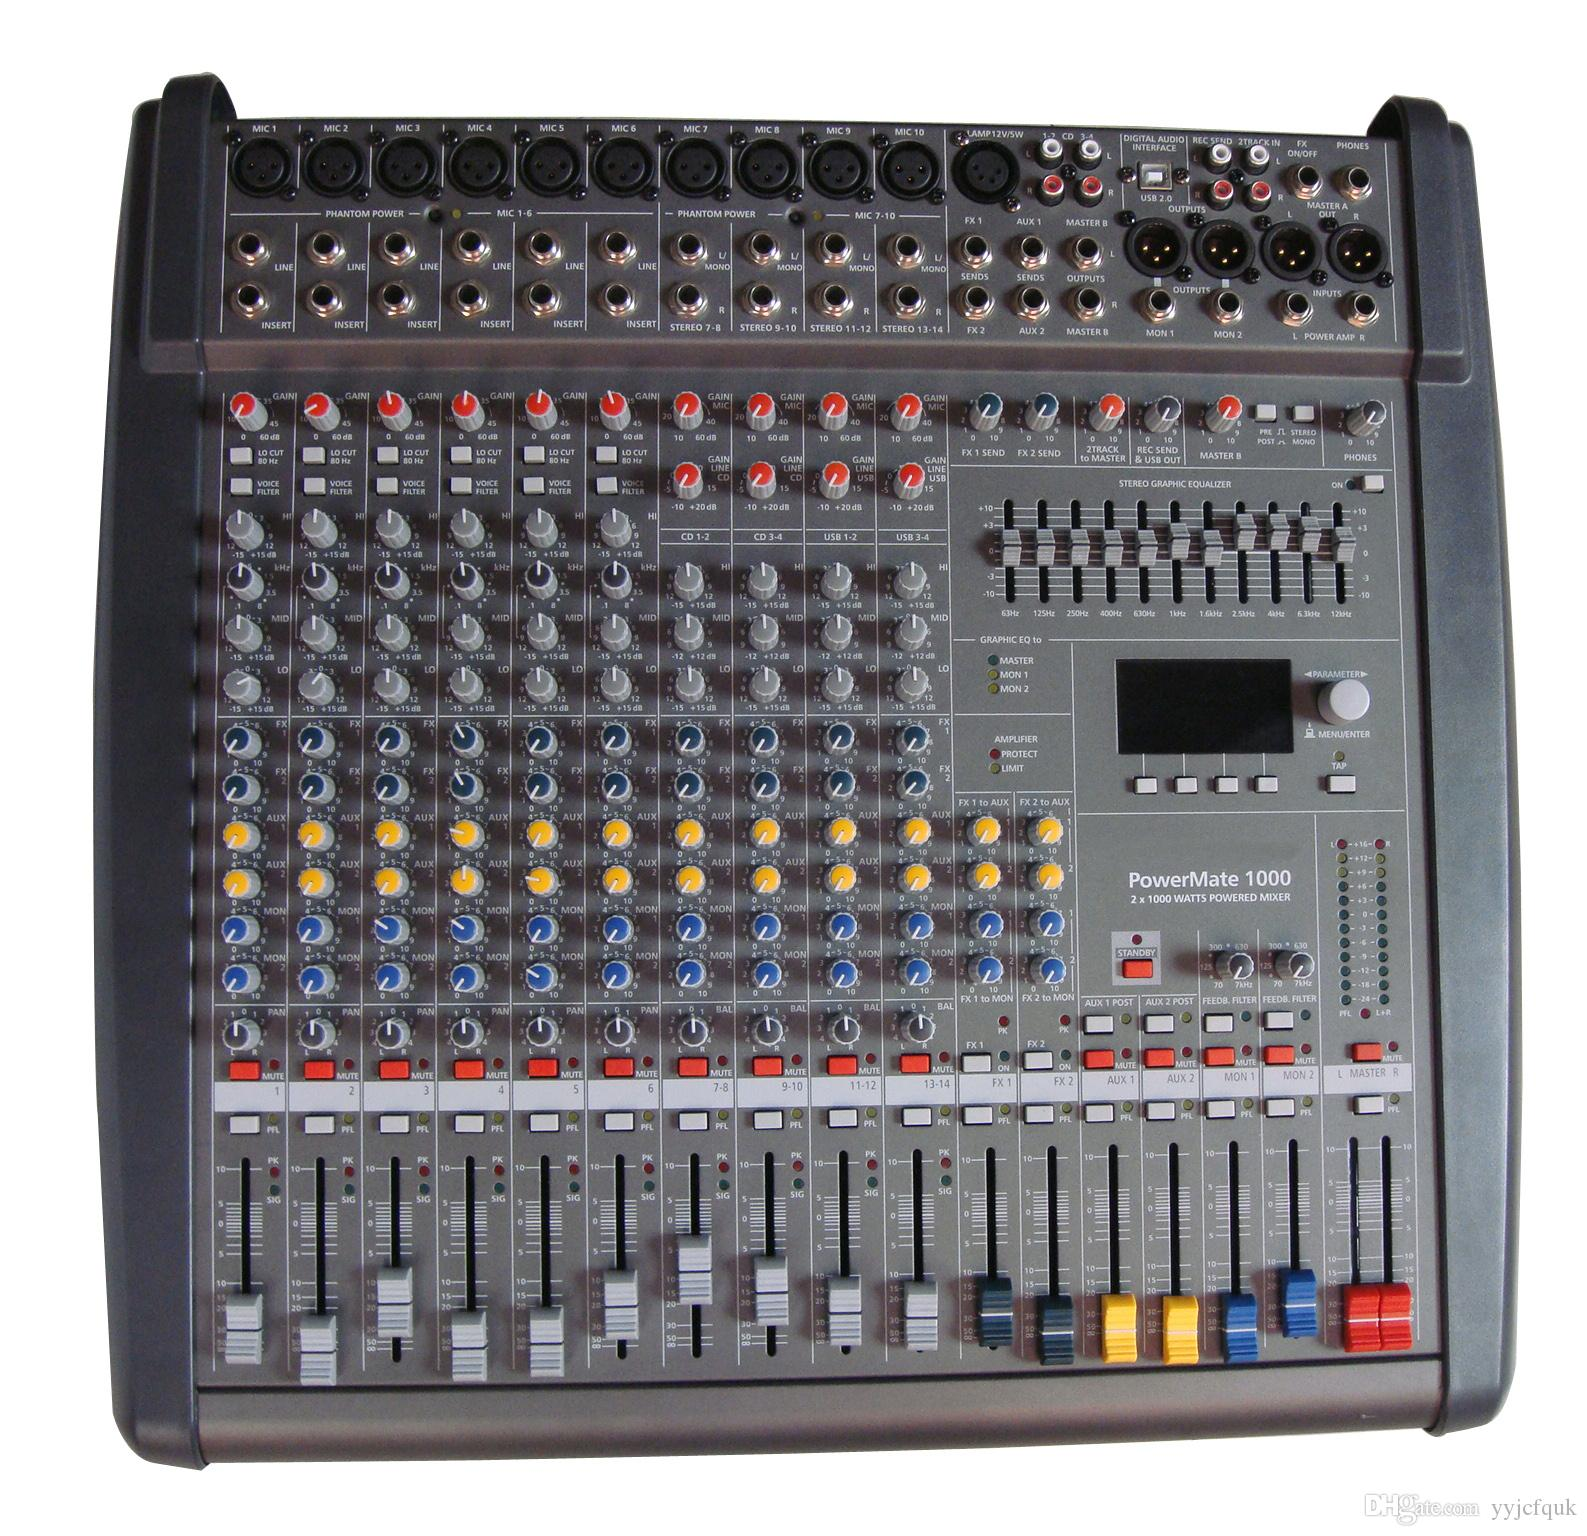 10 channel powermate1000 3 professional mixer mixer amplifier mixer with power amplifier stage. Black Bedroom Furniture Sets. Home Design Ideas